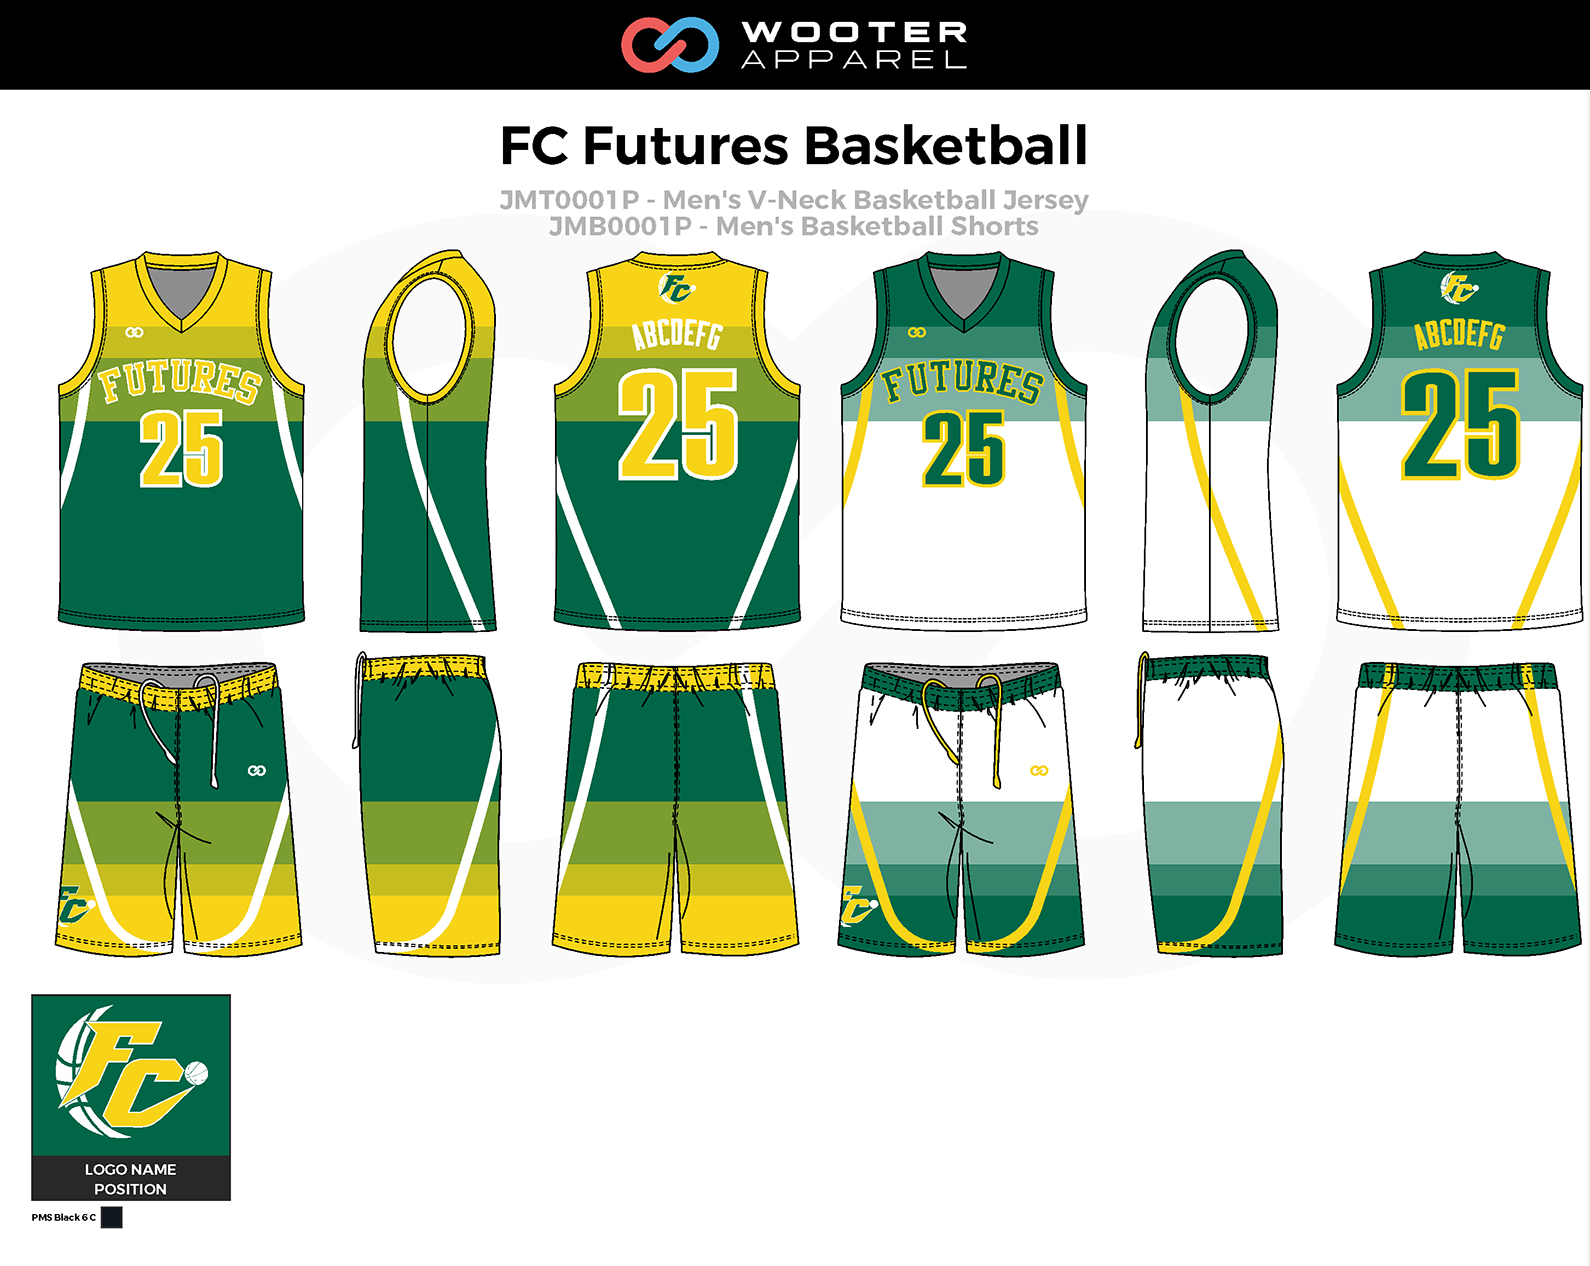 2018-09-21 FC Futures Basketball 4.png